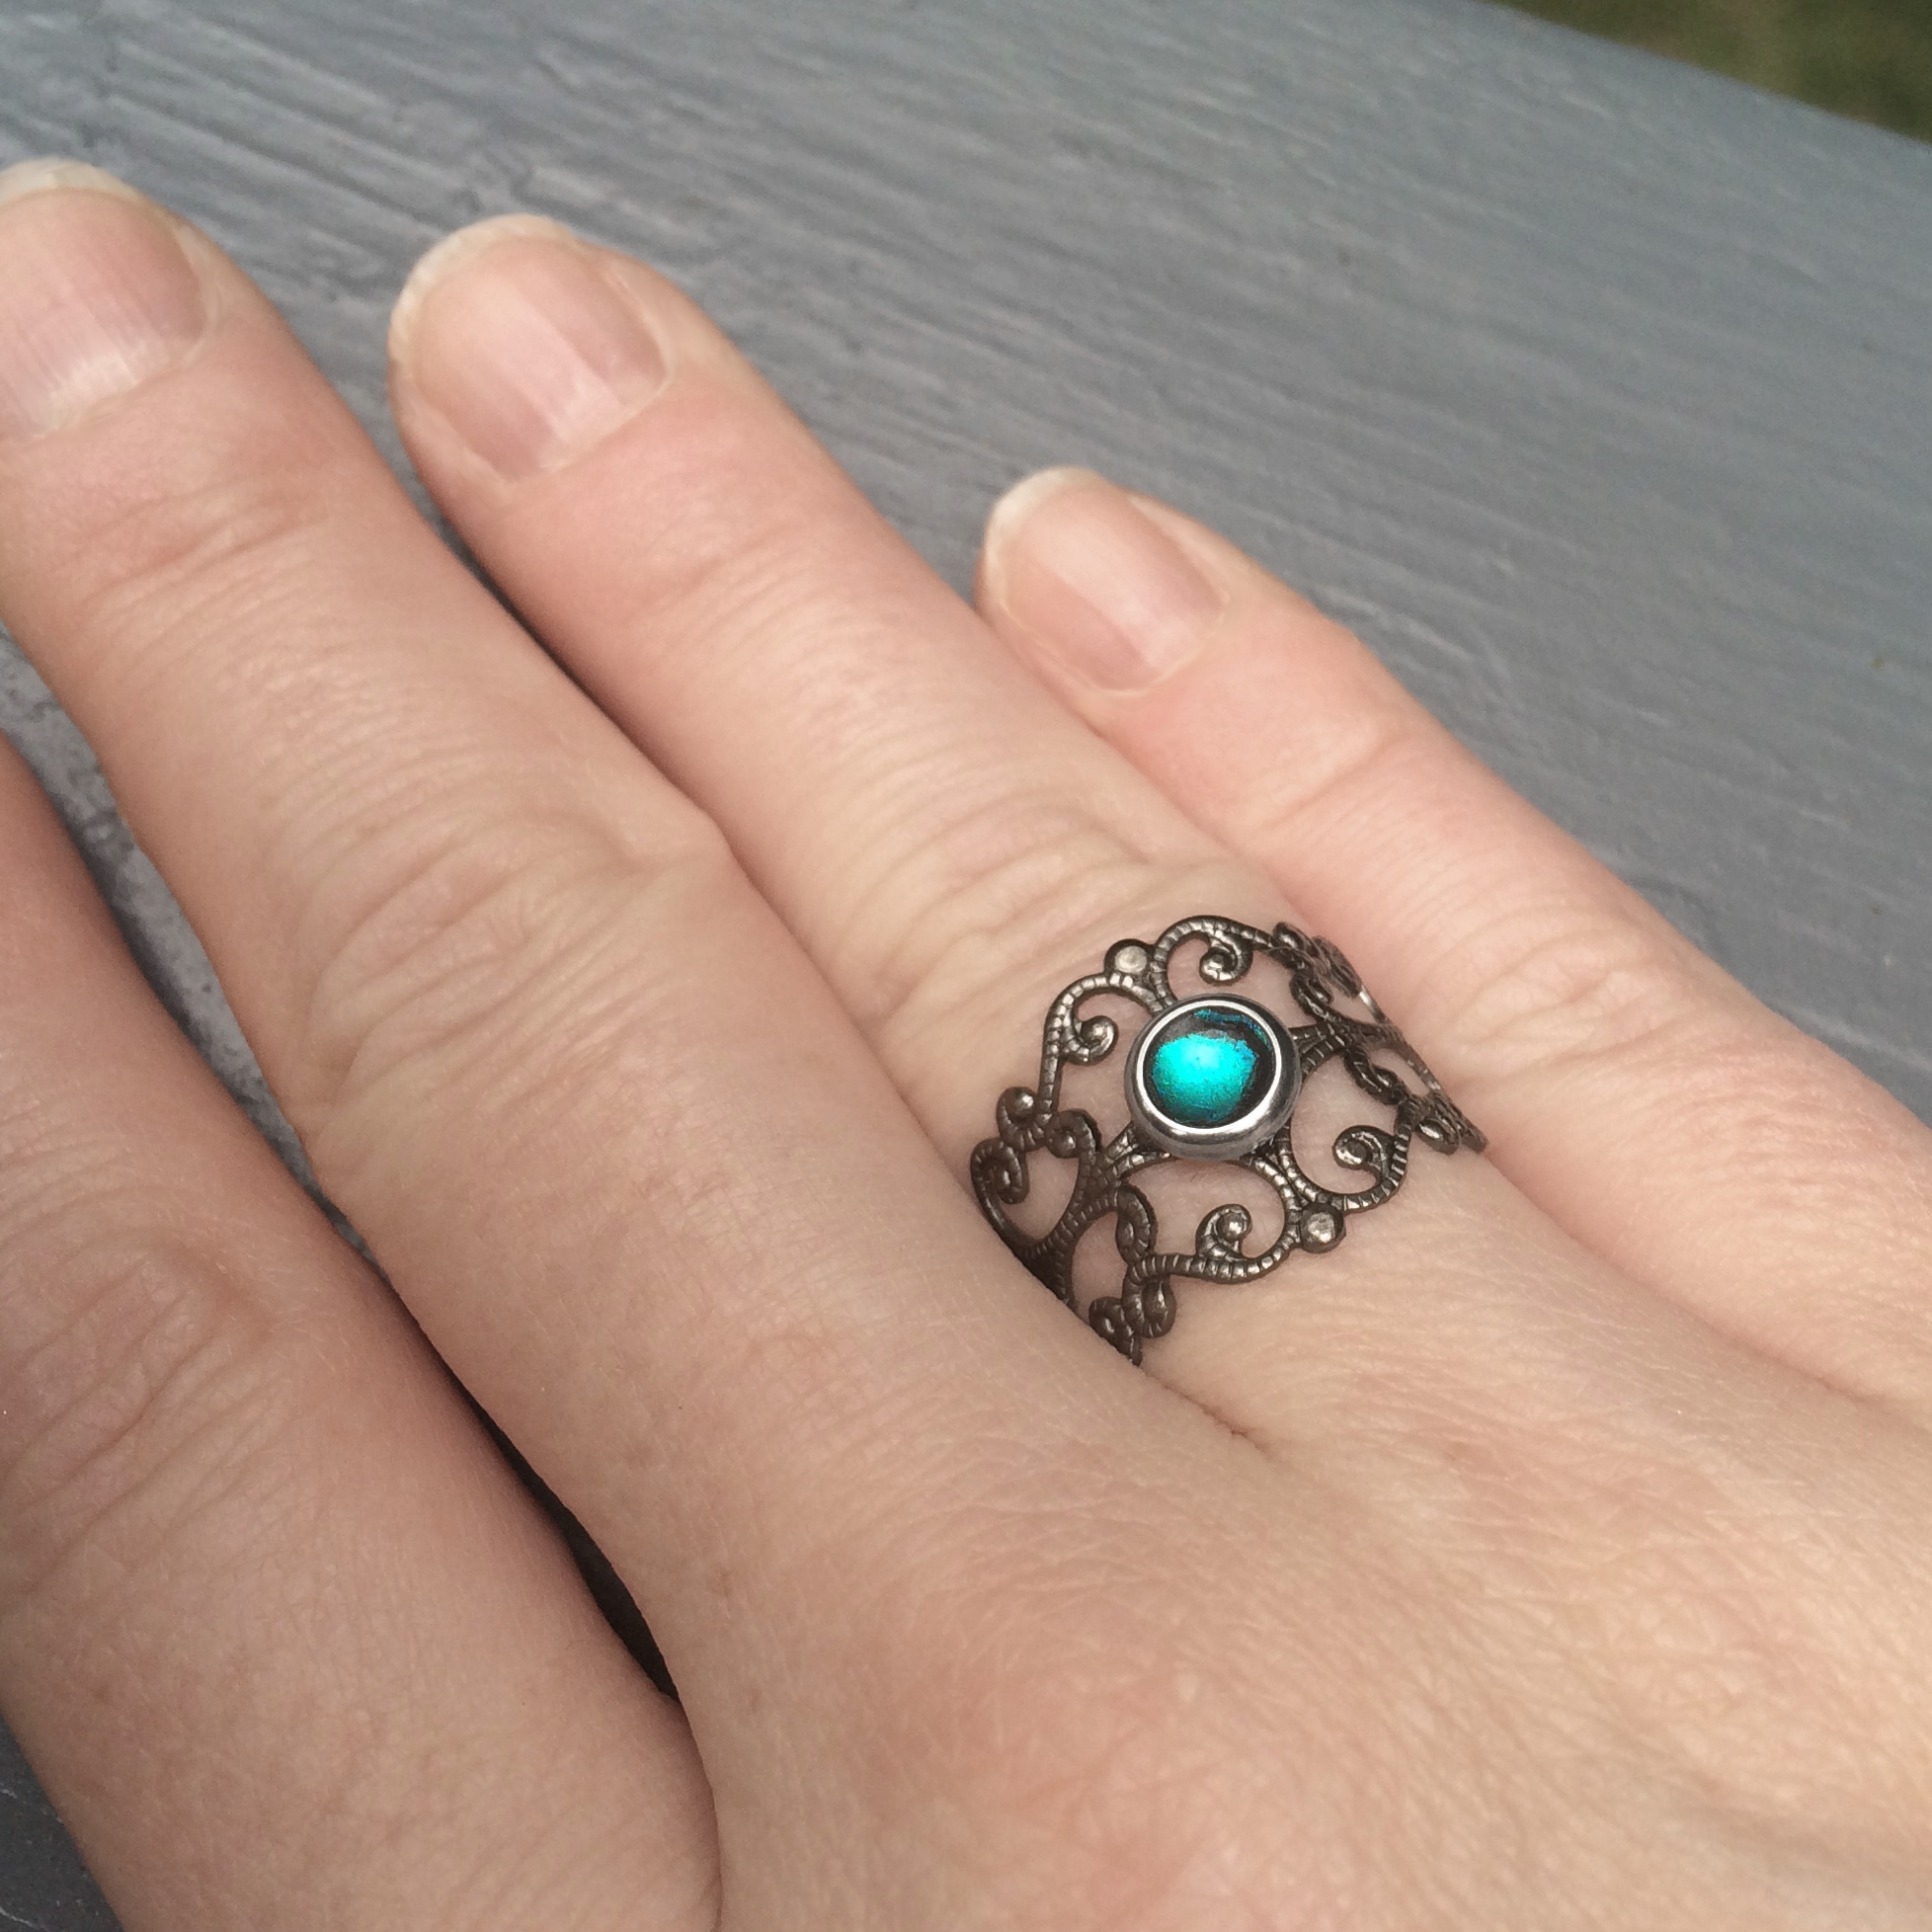 Teal Wedding Rings Pictures